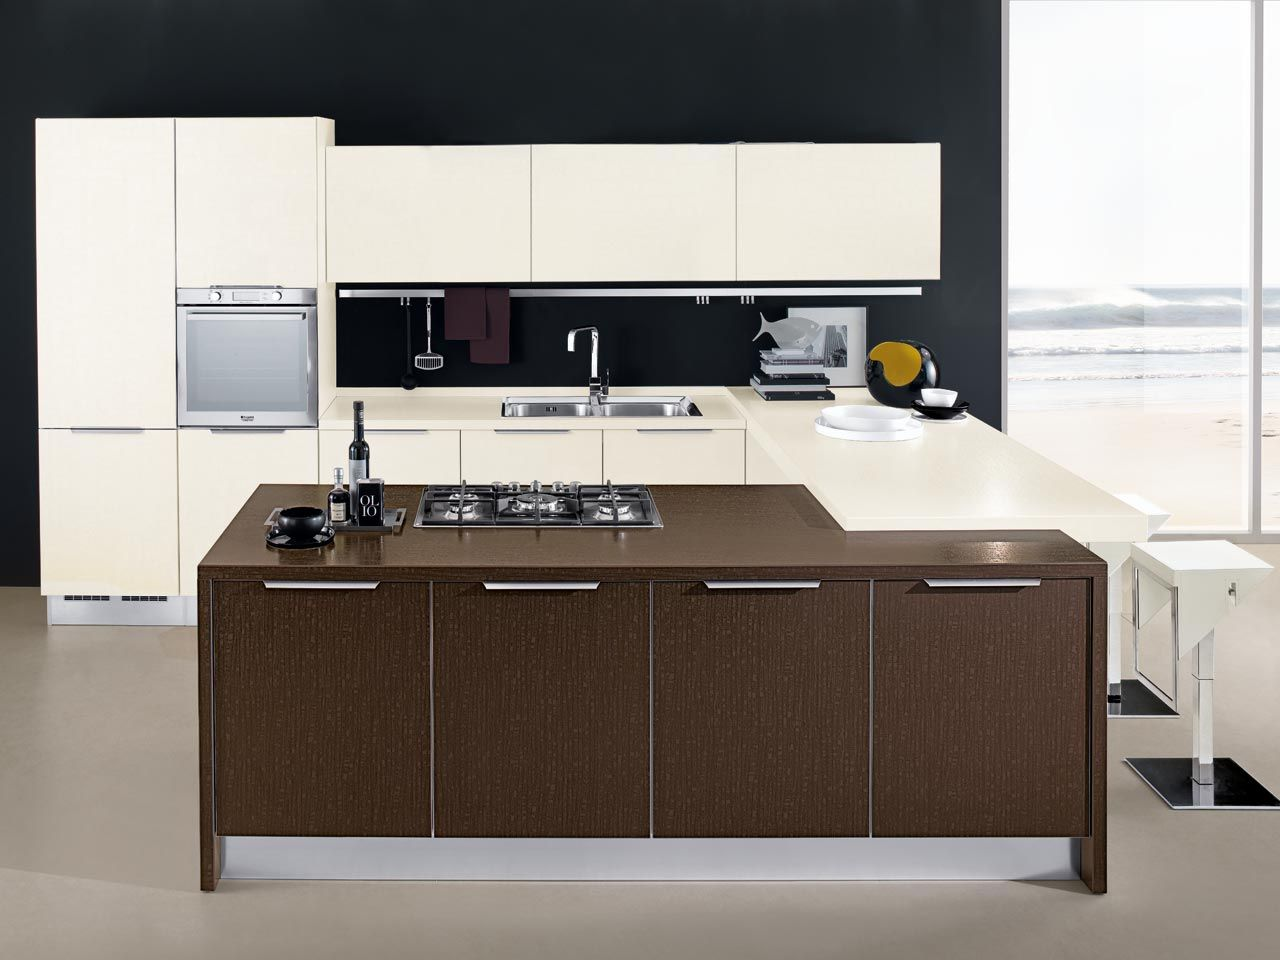 Nilde Gres - Kitchens - Cucine Lube | U Kitchens | Pinterest ...